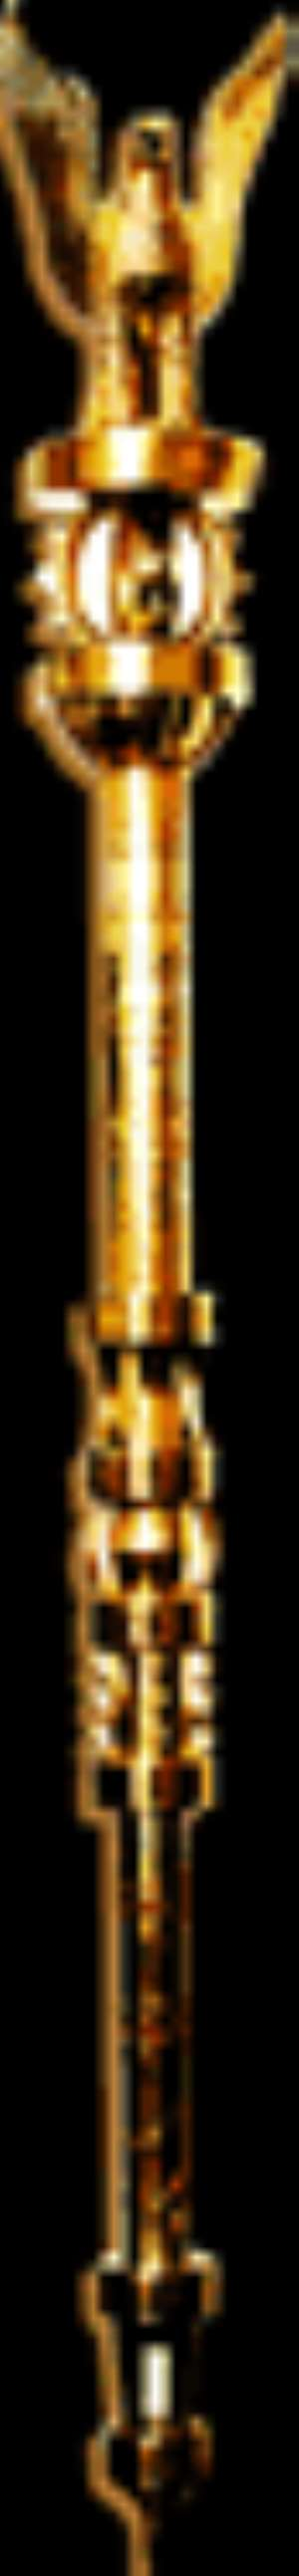 The Mace, the symbol of Parliament's authority